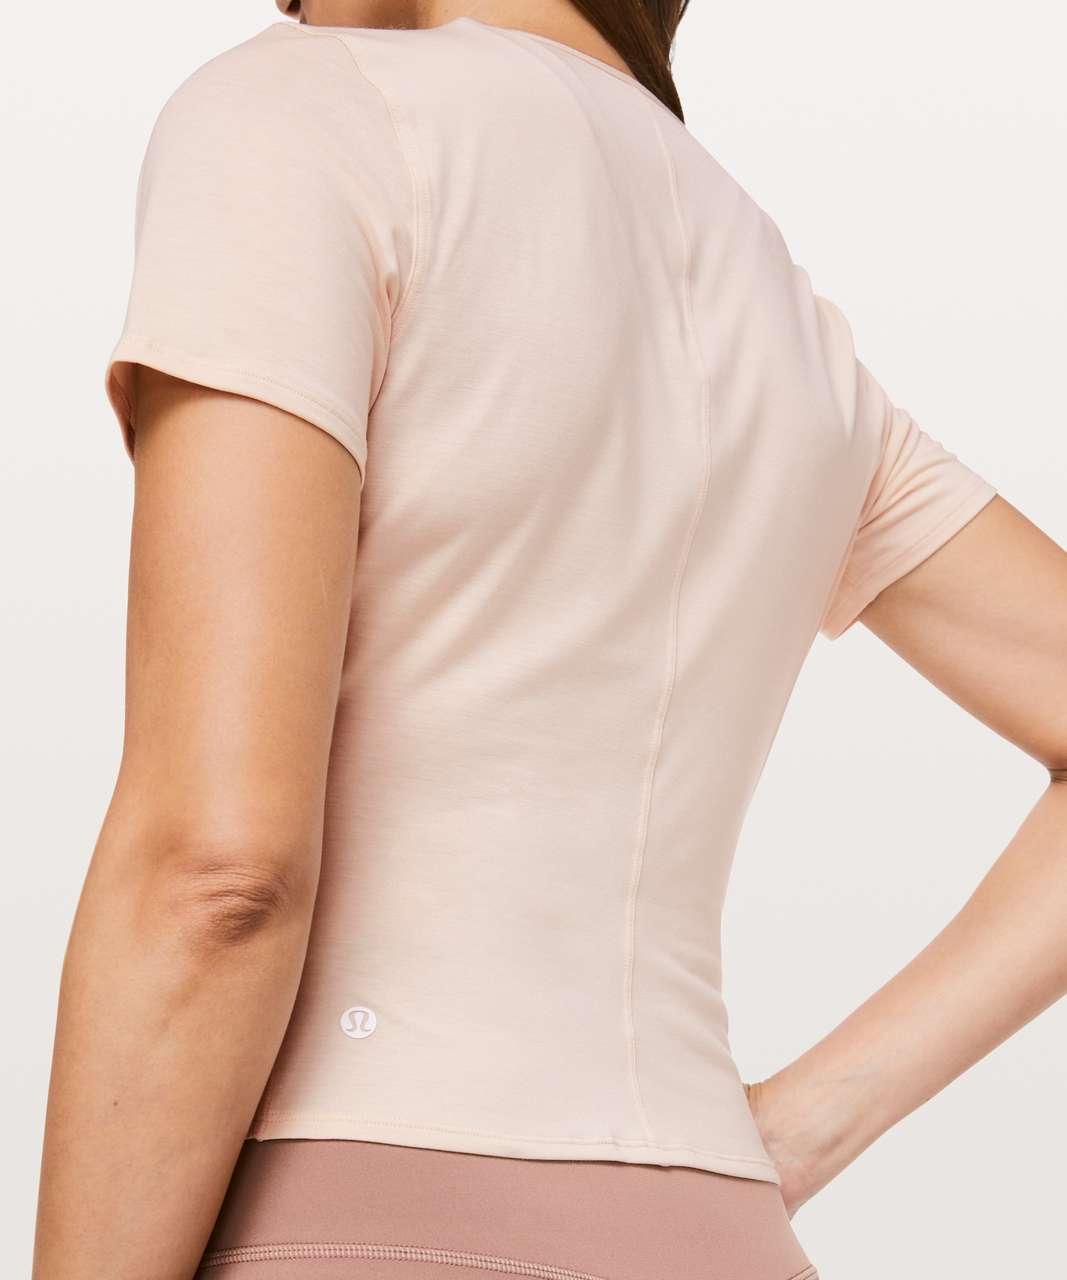 Lululemon Round Trip Short Sleeve - Heathered Nudie